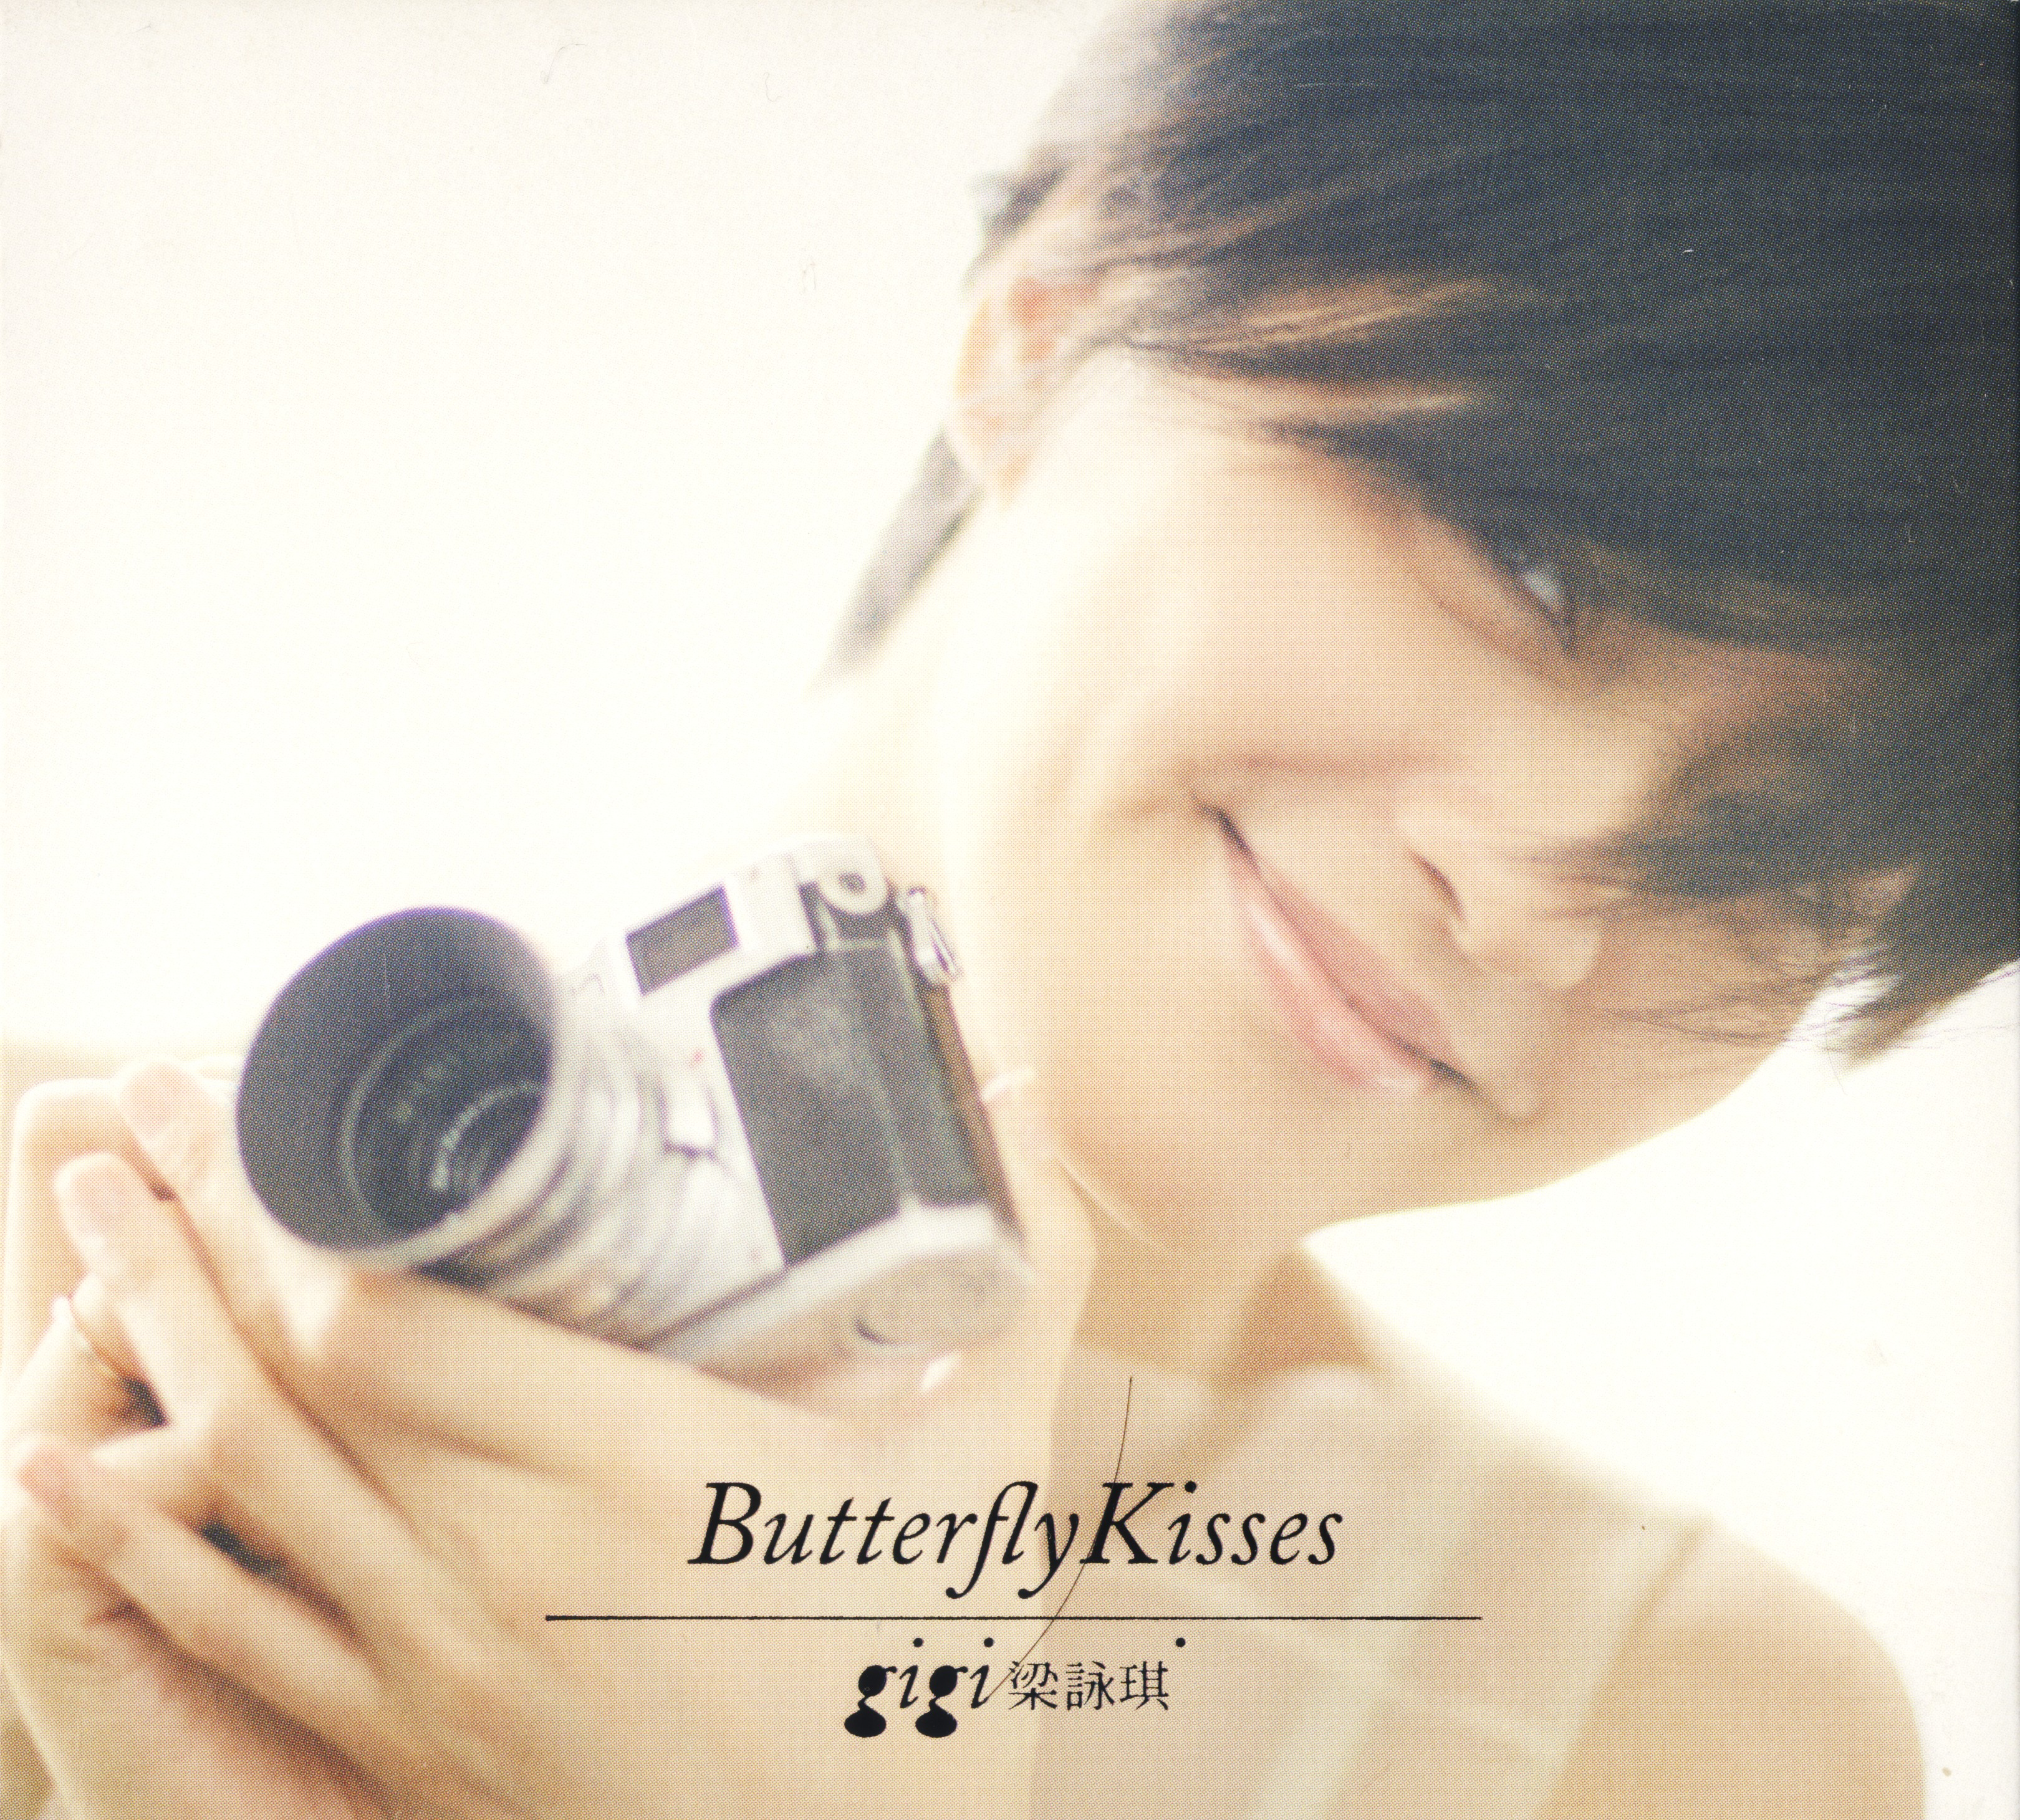 梁咏琪 Butterfly Kisses